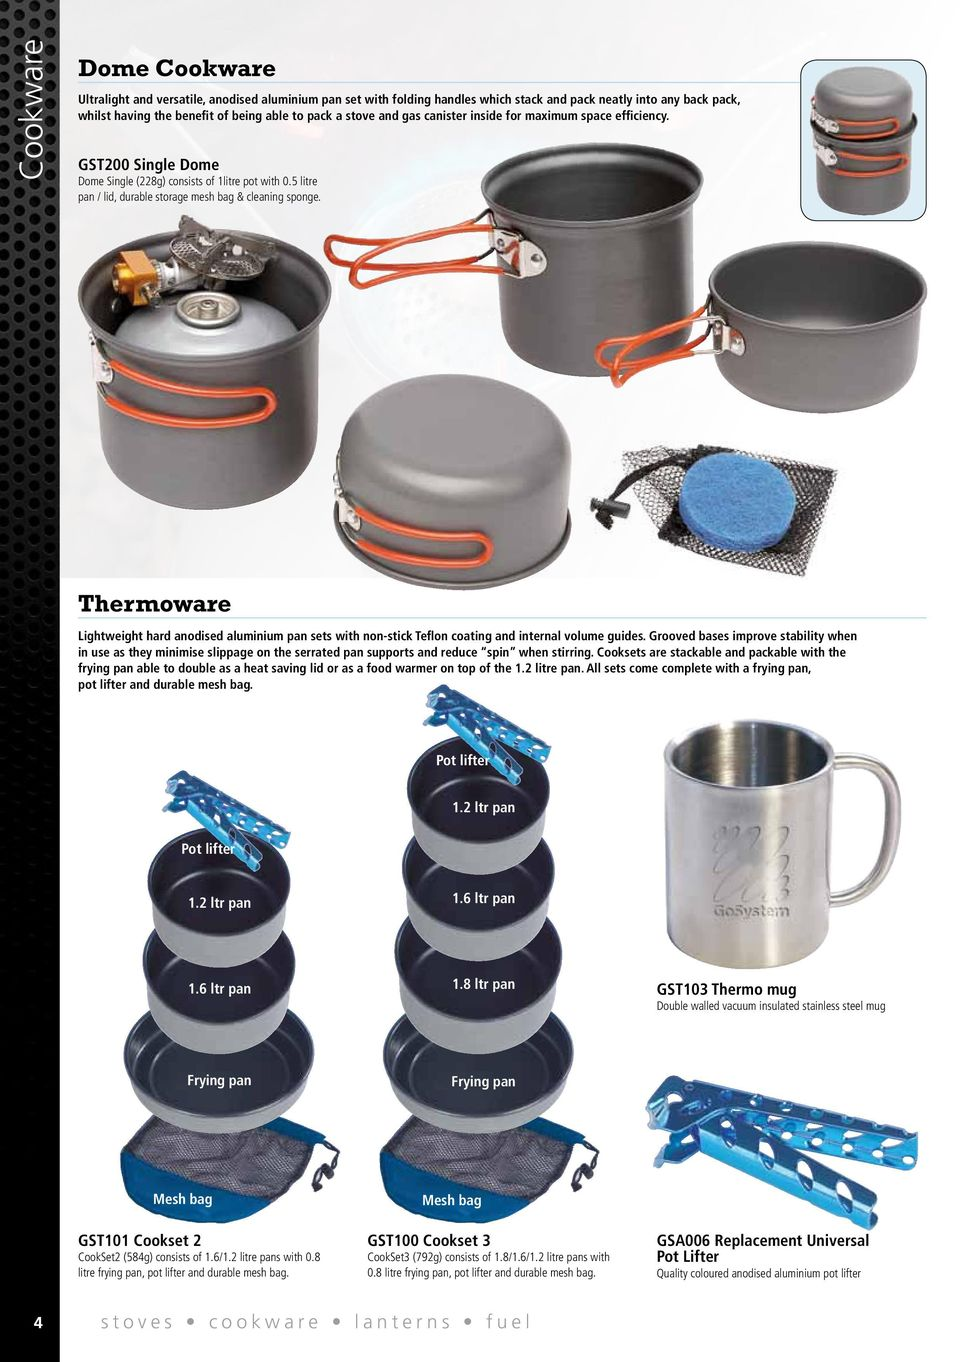 Thermoware Lightweight hard anodised aluminium pan sets with non-stick Teflon coating and internal volume guides.